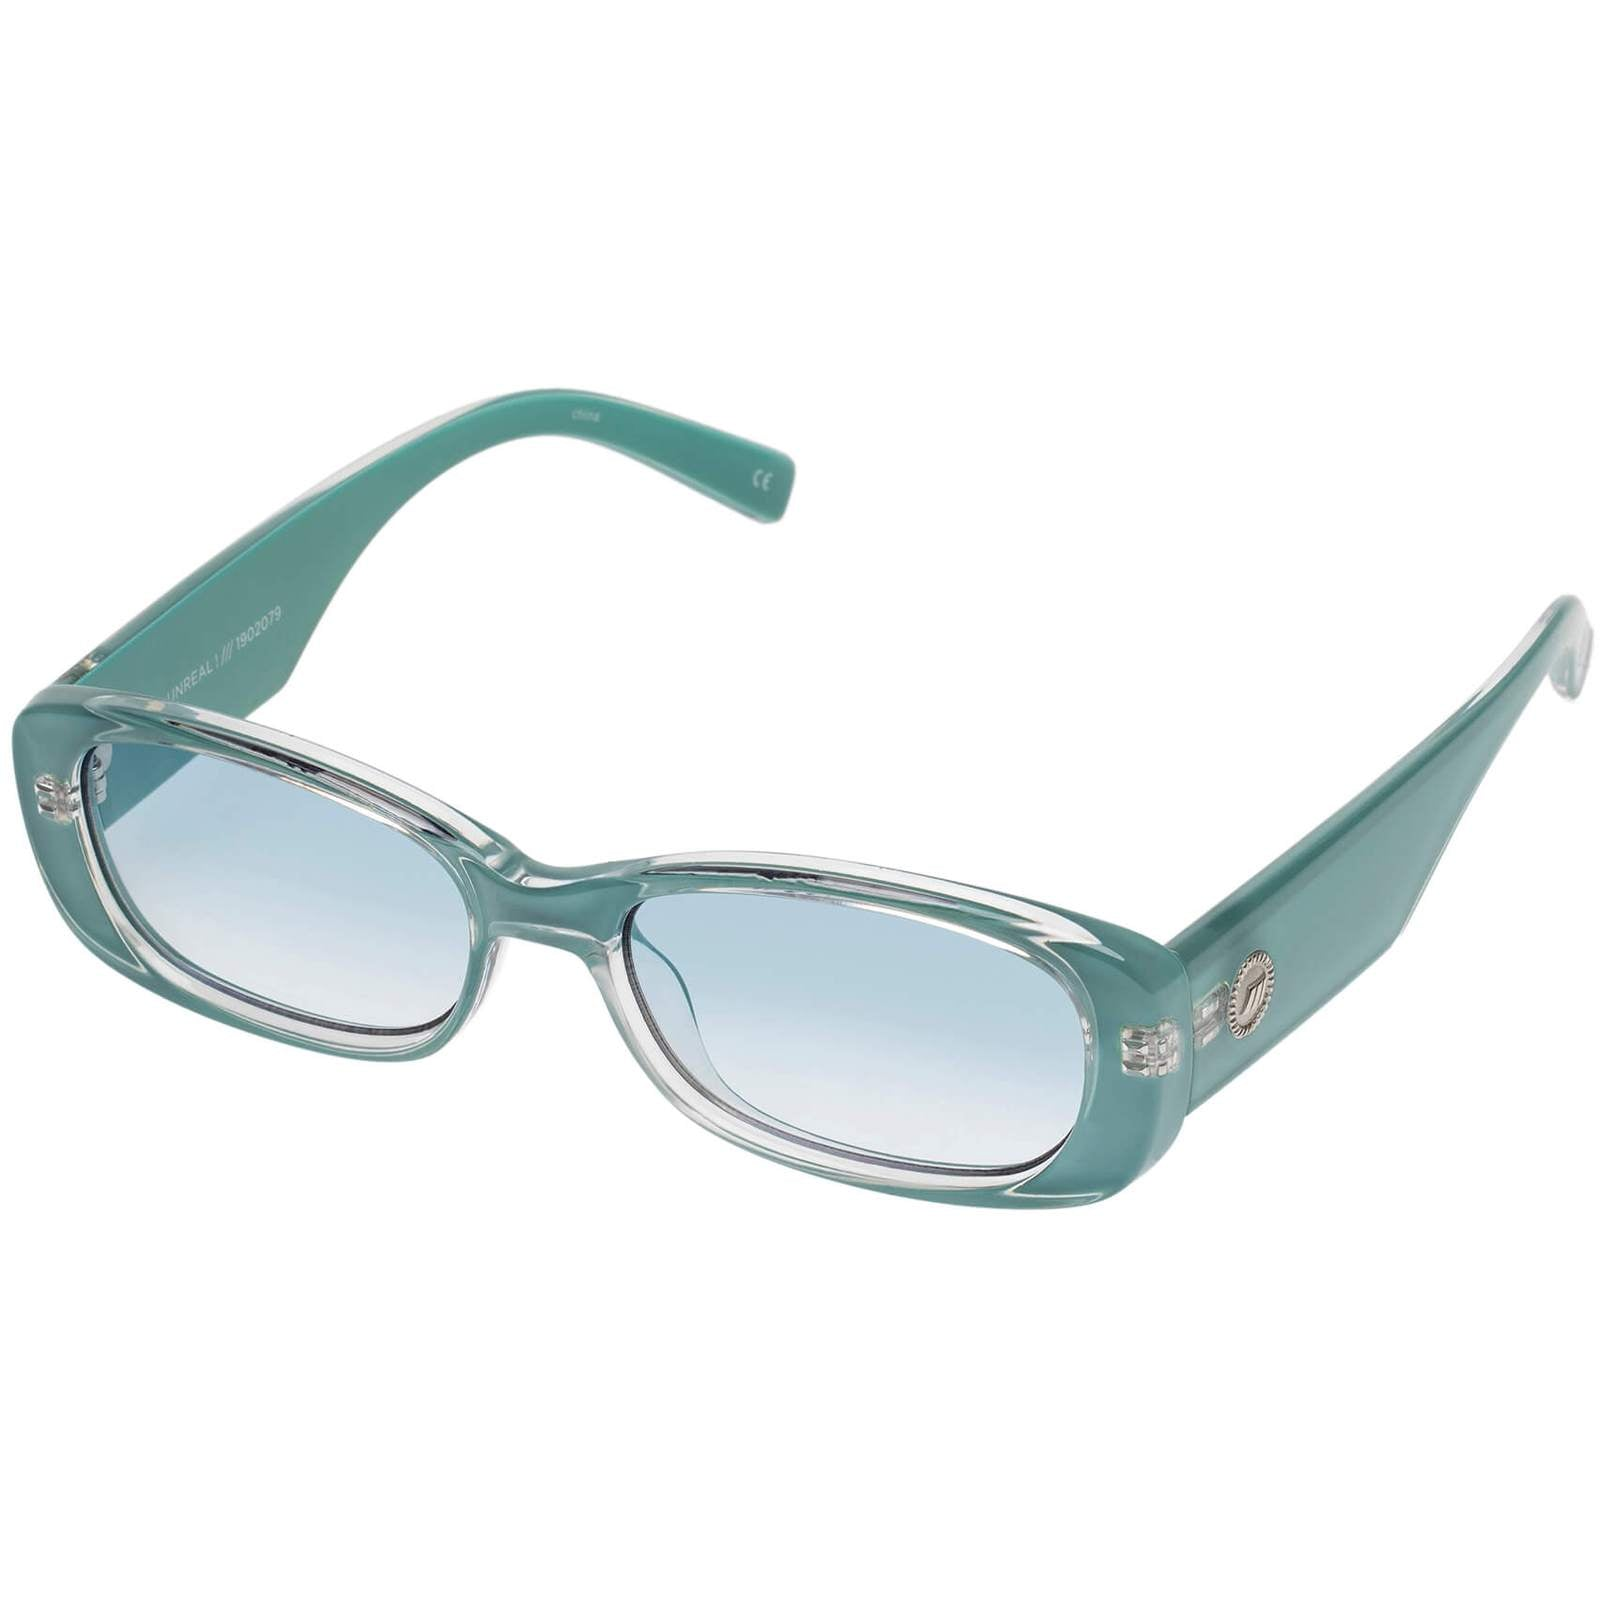 Le Specs | Unreal! Teal Sunglasses